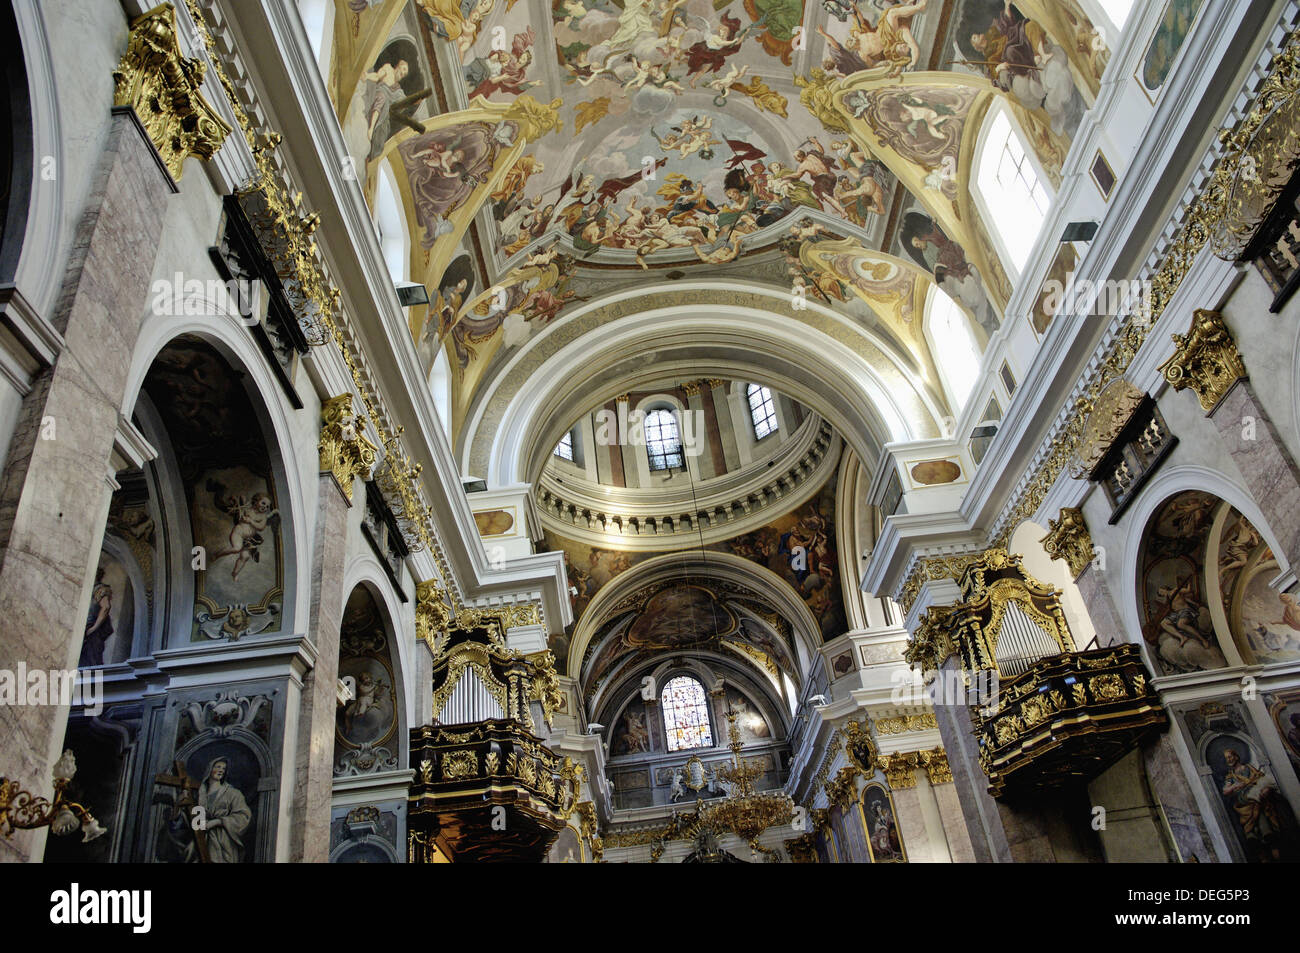 The frescoes by Giulio Quaglio painted from 1703 to 1723. The Cathedral of St Nicholas. Ljubljana city. Slovenia. - Stock Image